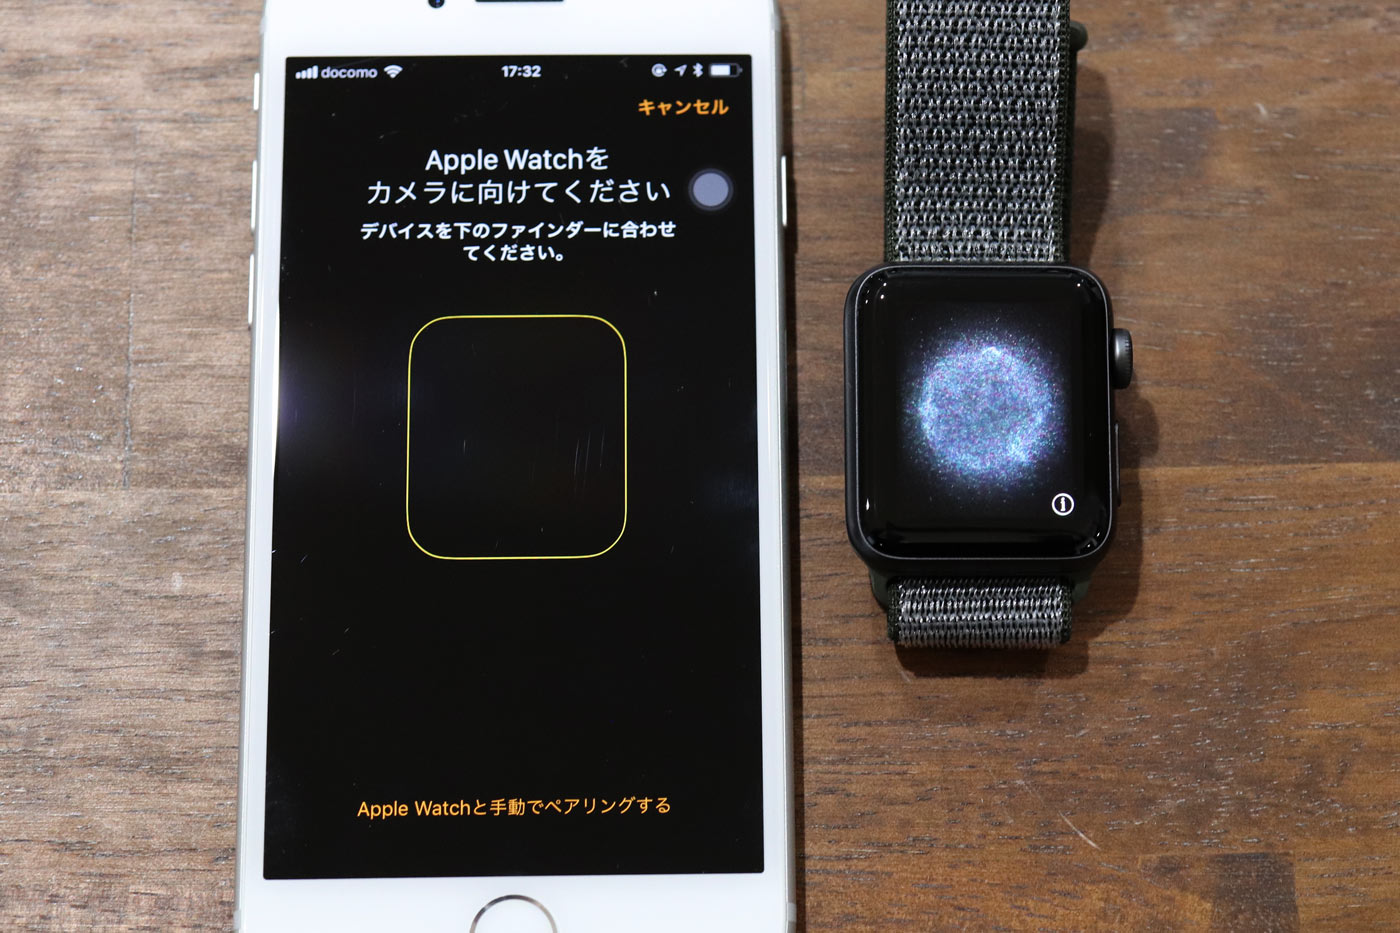 iPhoneとApple Watch 3のペアリング